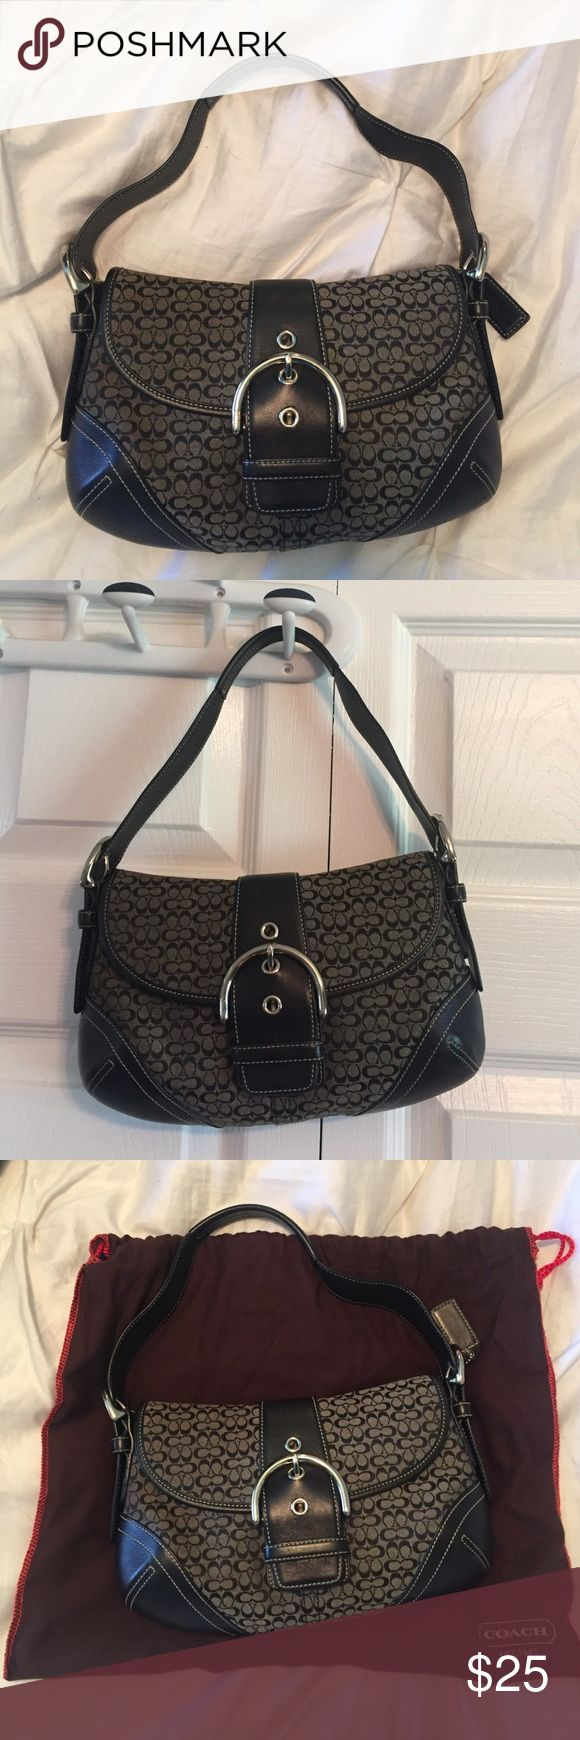 Authentic Black Coach Purse Authentic Black fabric and leather Coach Purse. In great/excellent condition. Coach Bags Shoulder Bags